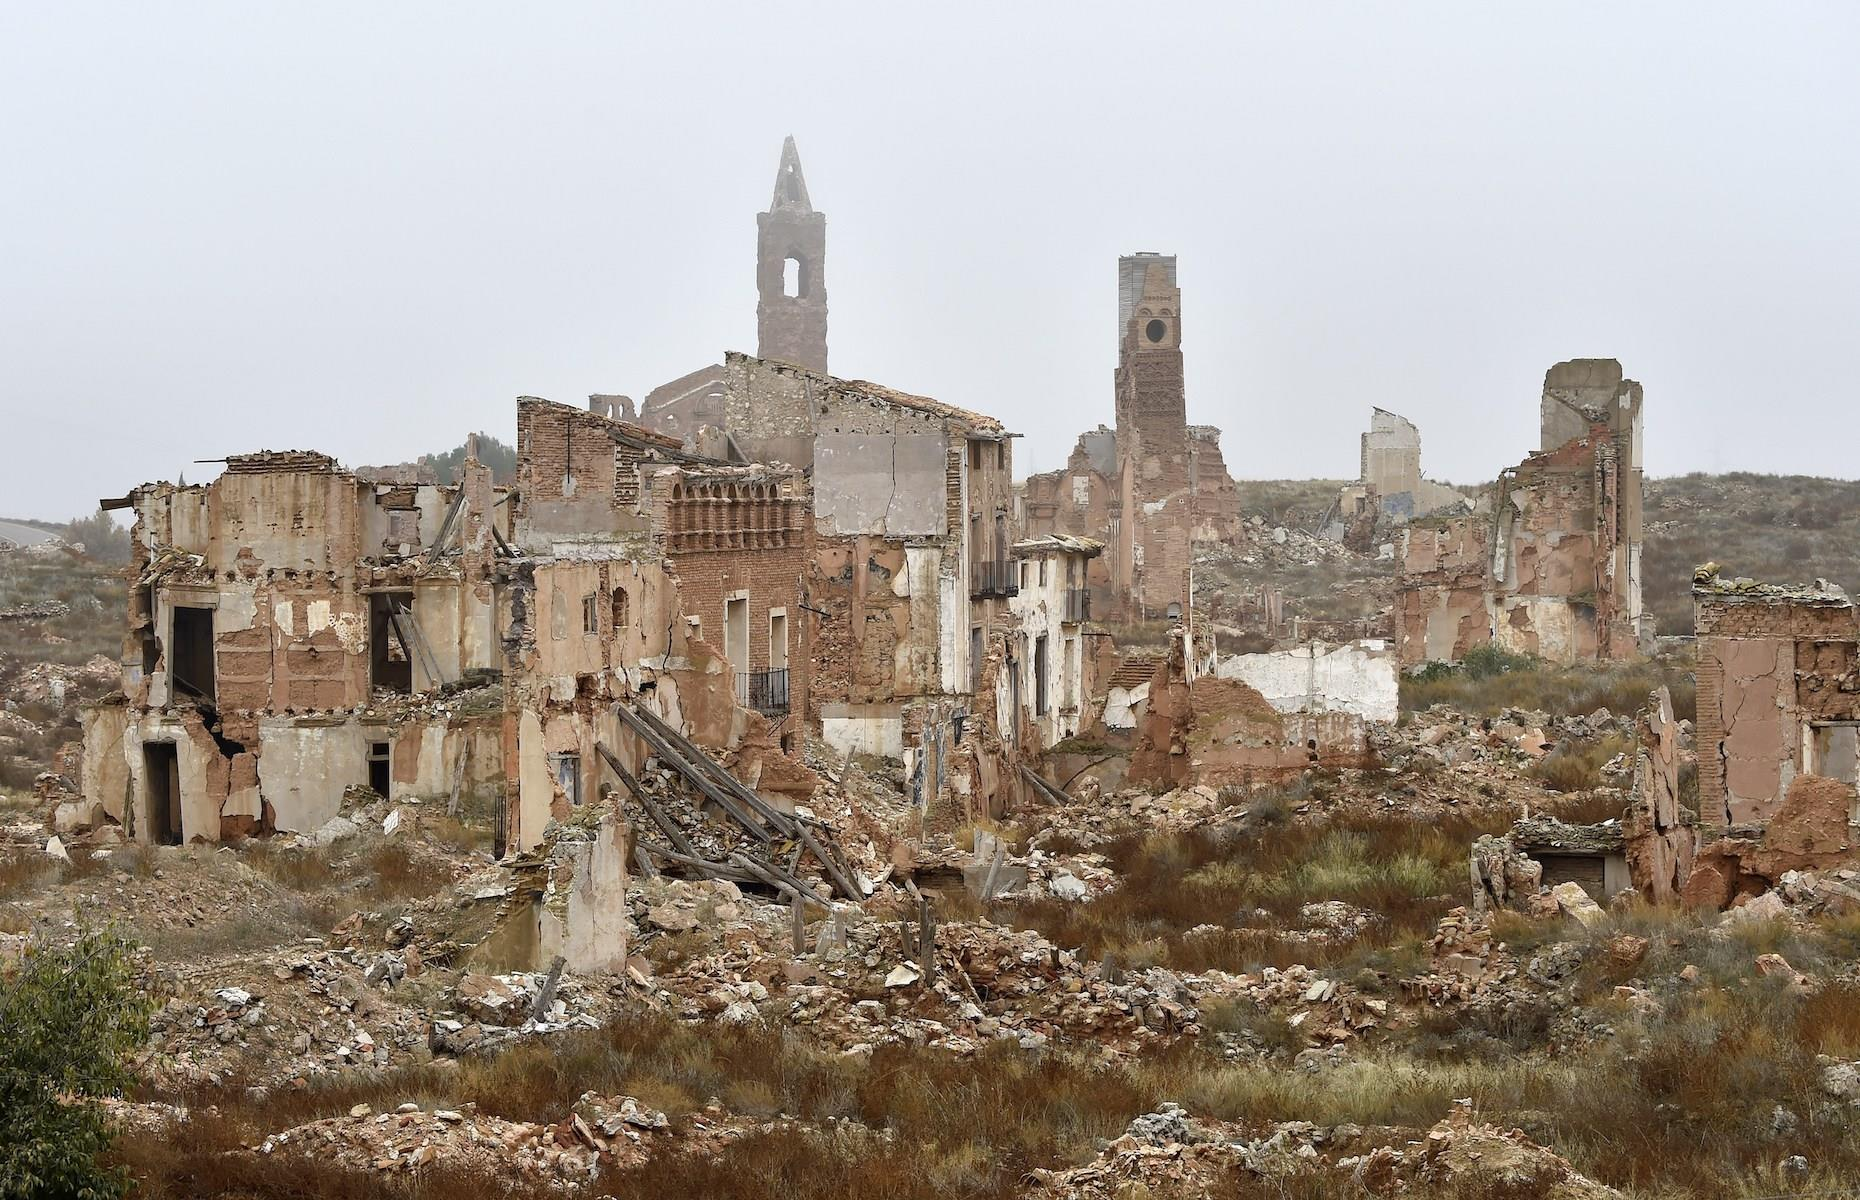 Slide 31 of 52: The remains of battle ravaged Belchite stand solemnly in Spain's Zaragoza province, acting as a poignant reminder of the horrors of the Spanish Civil War. The town was almost completely obliterated during a bloody battle over two weeks in 1937, that also claimed the lives of thousands of people. Rather than be demolished, its bullet-hole-ridden buildings, some still with intricately patterned walls and carvings, were left standing as a symbol of the past.